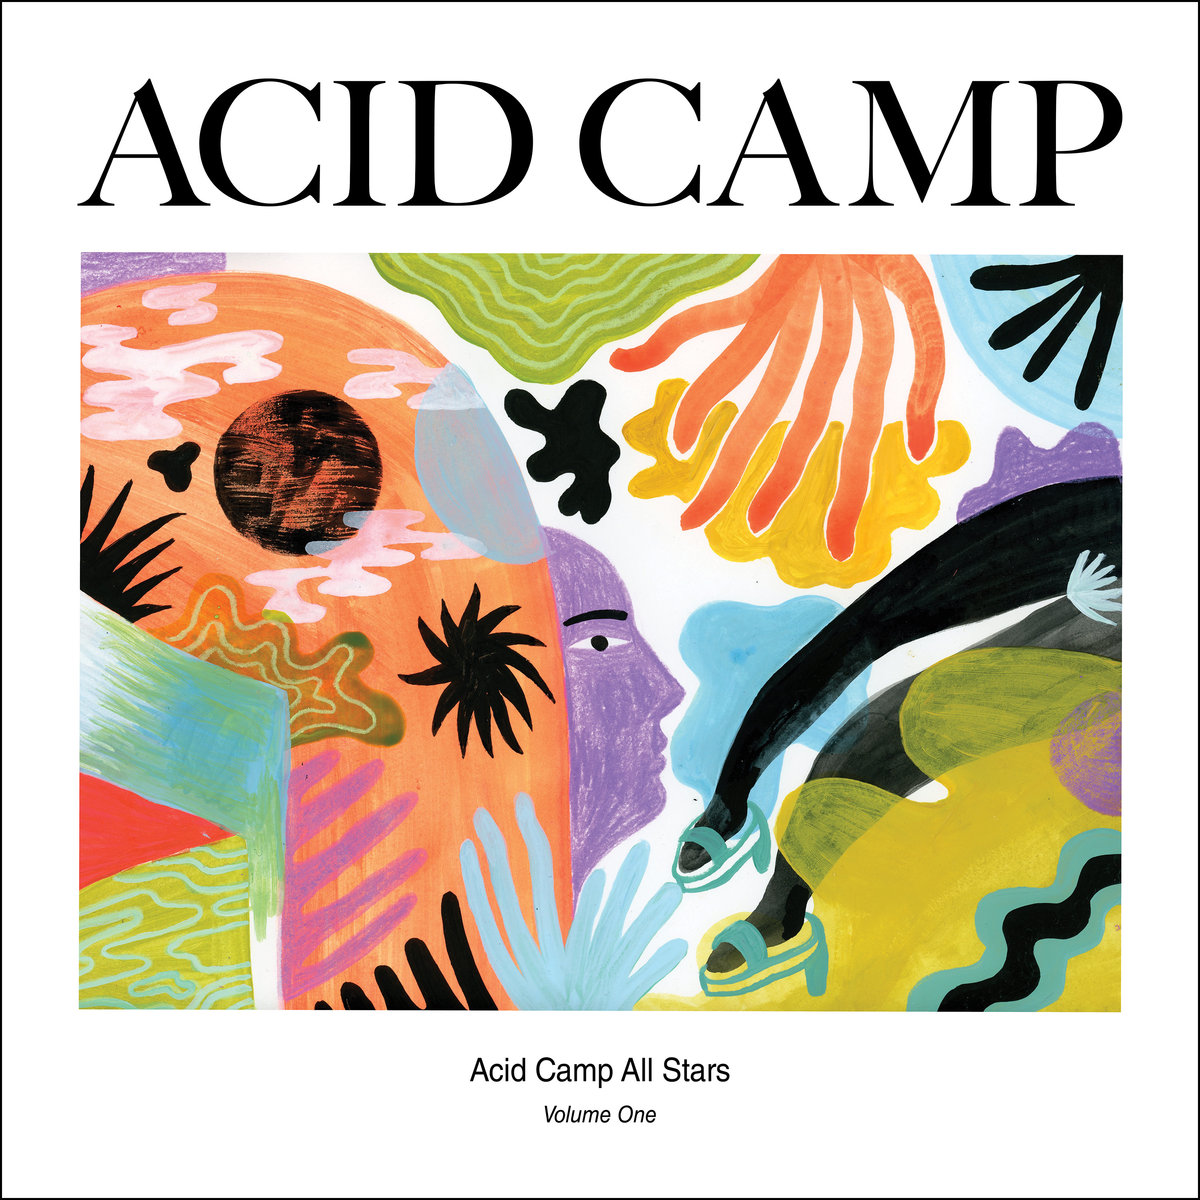 Acid Camp - Searching for paradise on the dance floor.